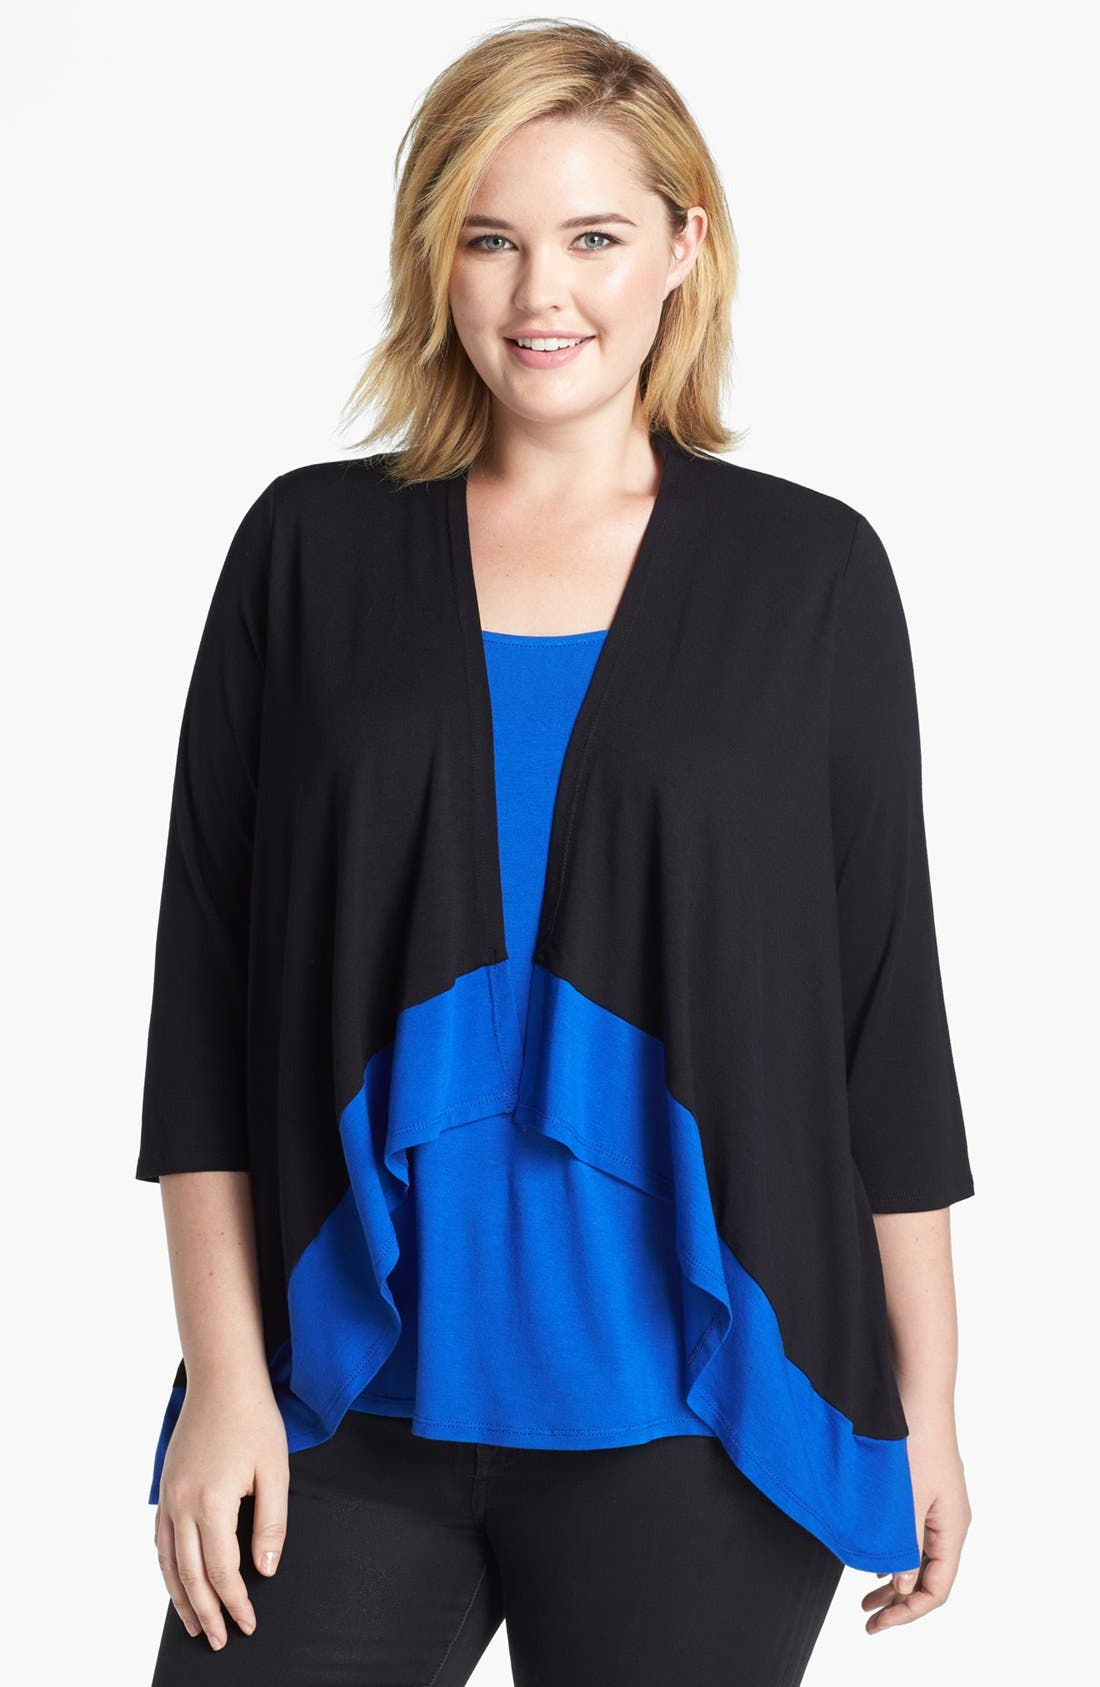 Main Image - Evans Colorblock Cardigan with Faux Camisole Insert (Plus Size)